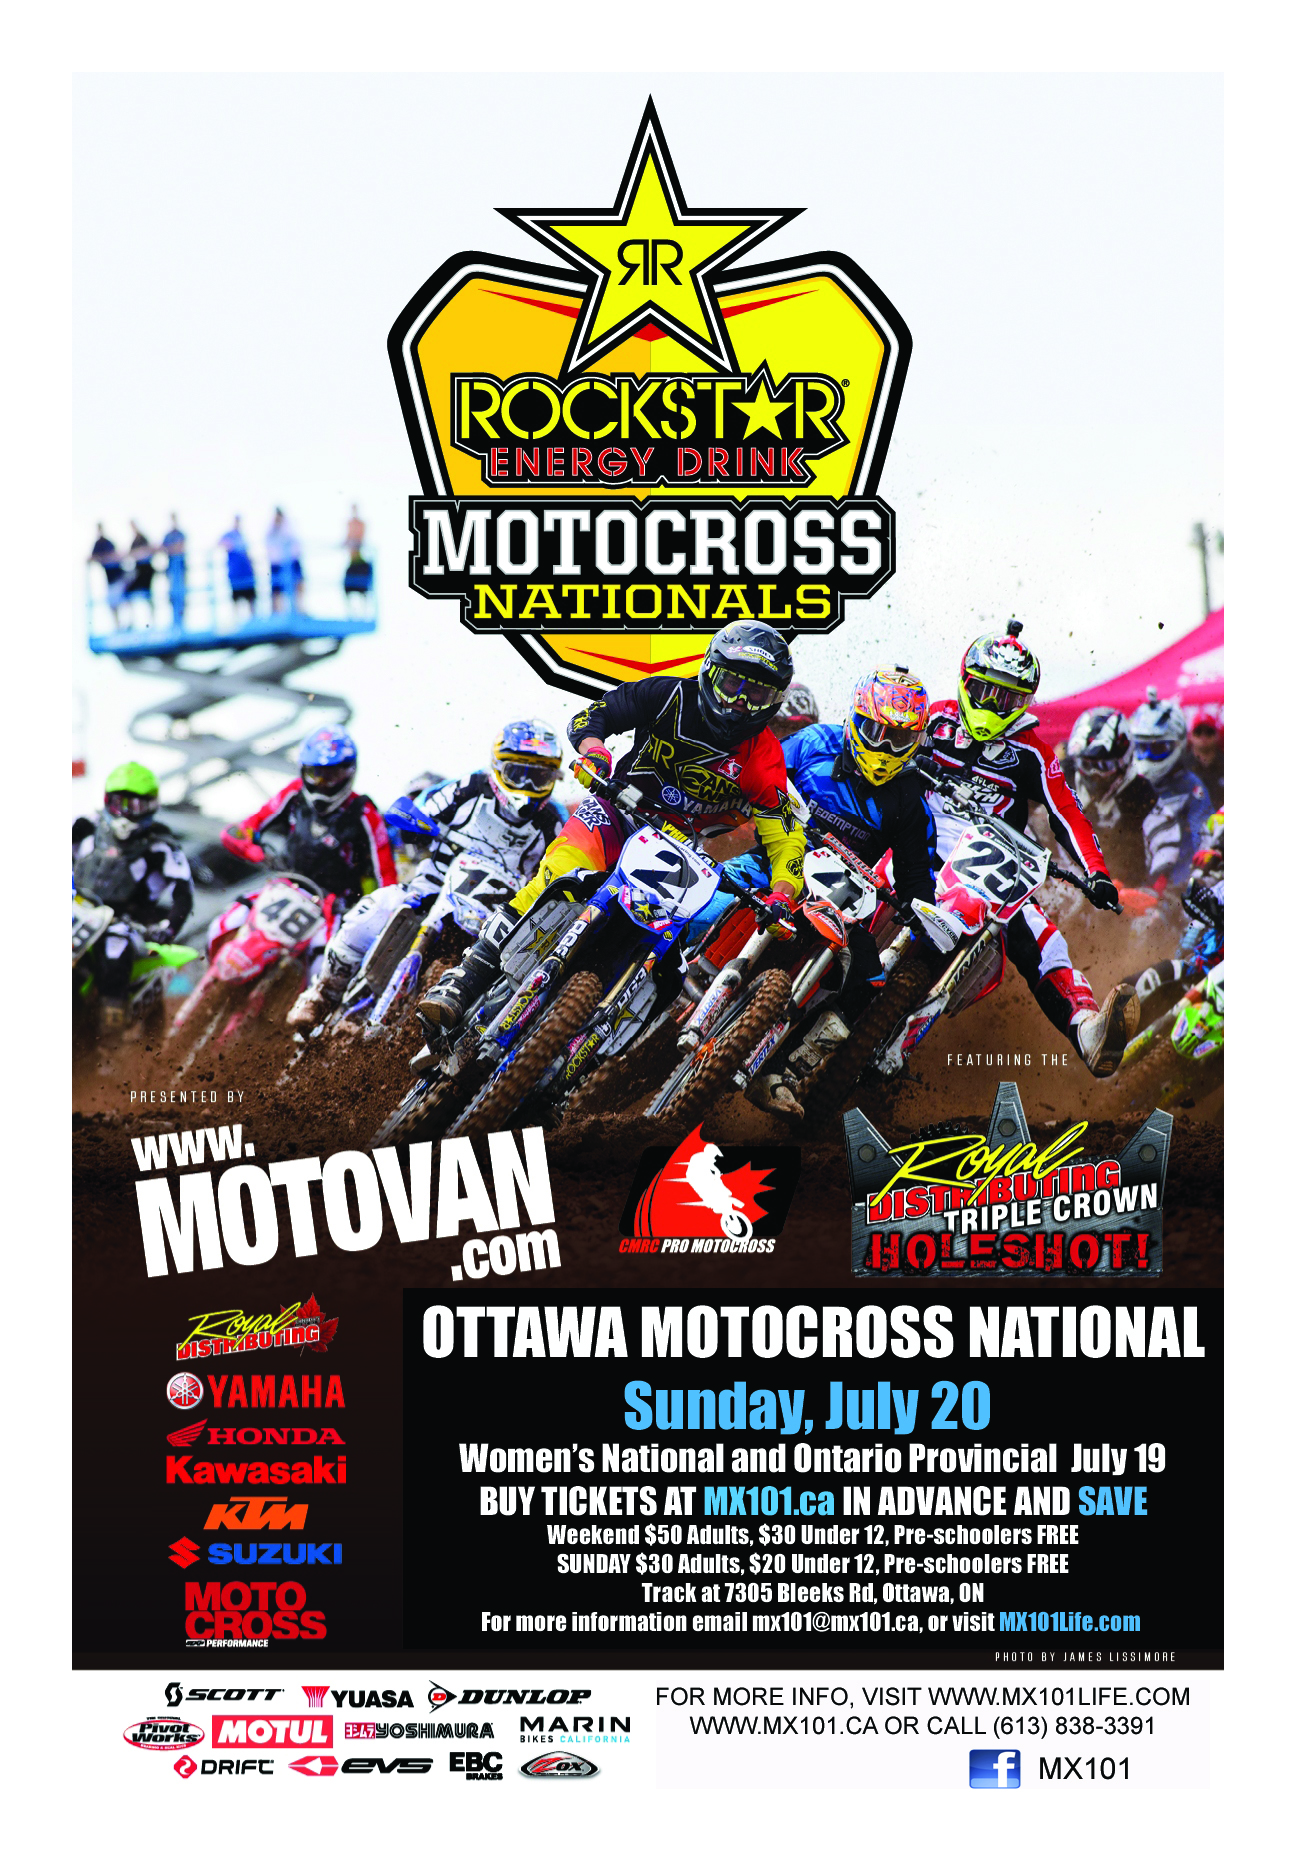 motocross-nationals-richmond-ontario.jpg